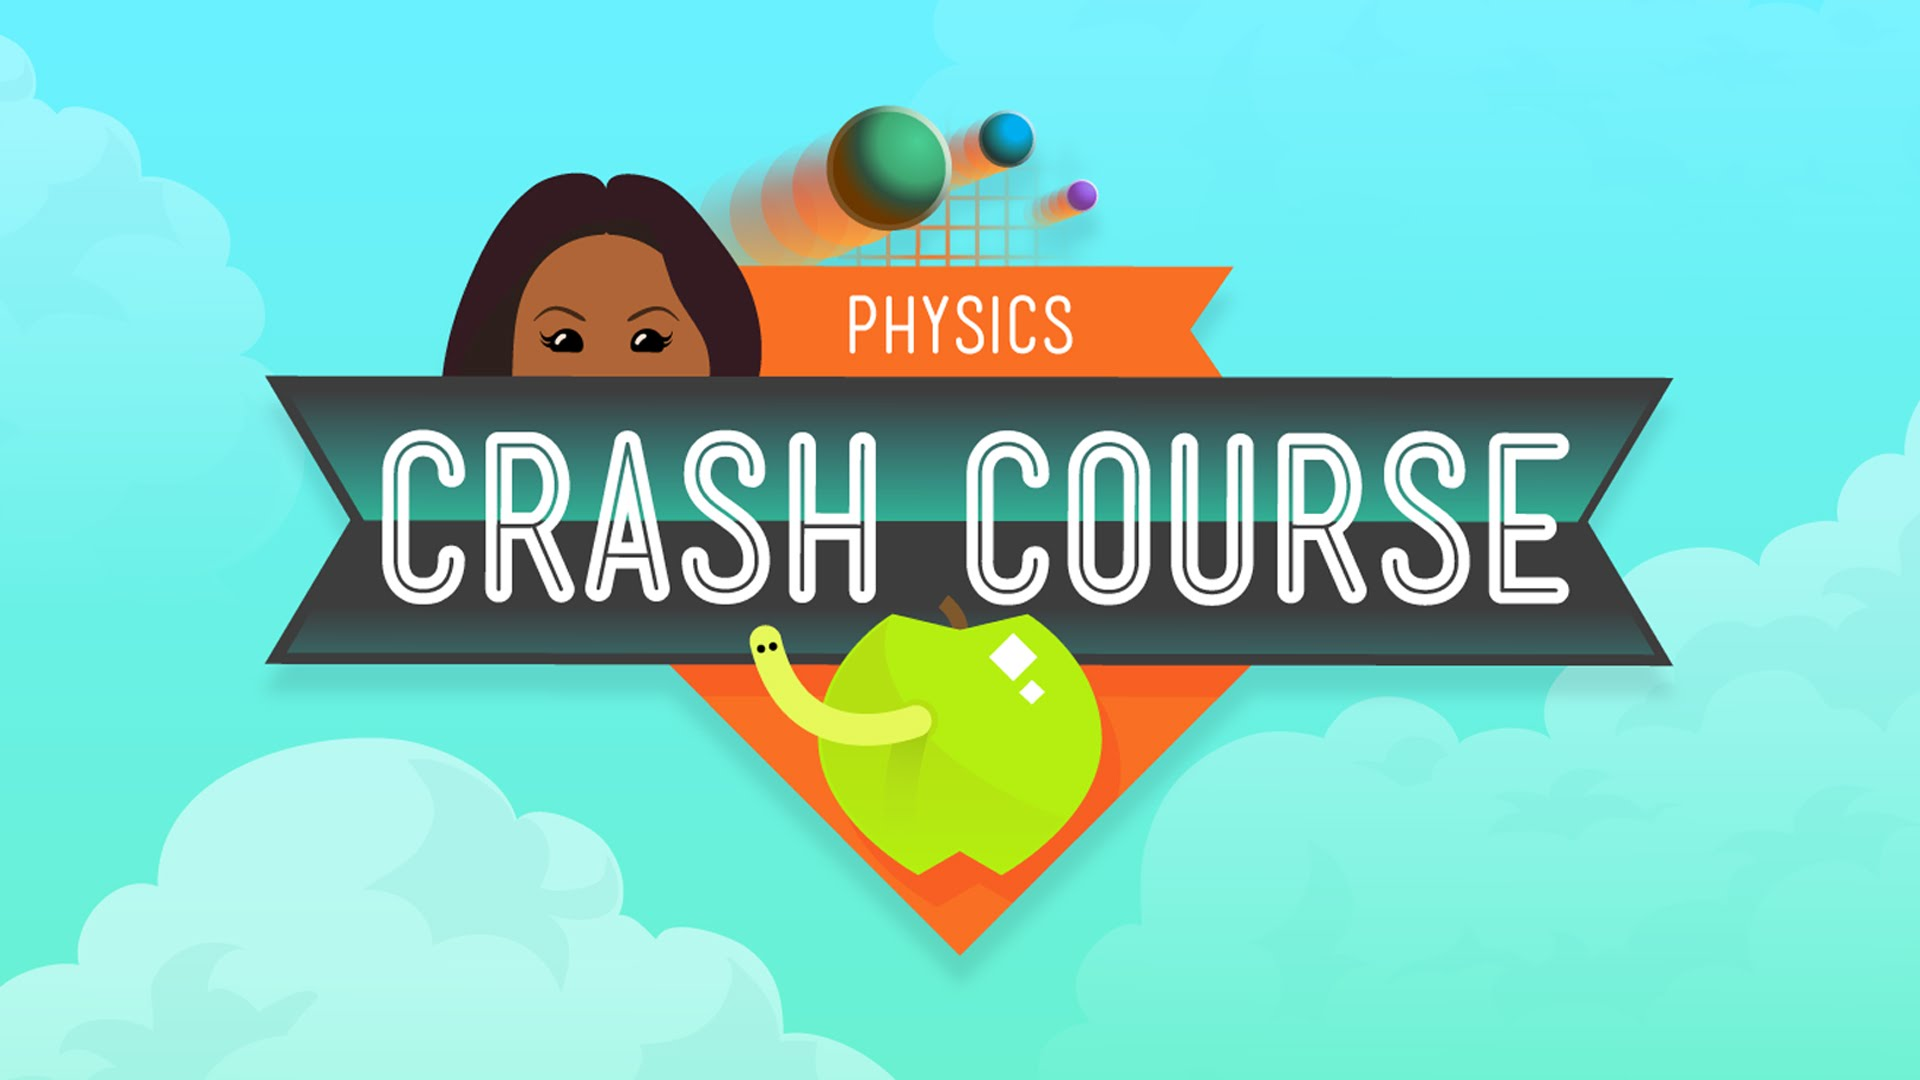 Crash Course: Physics